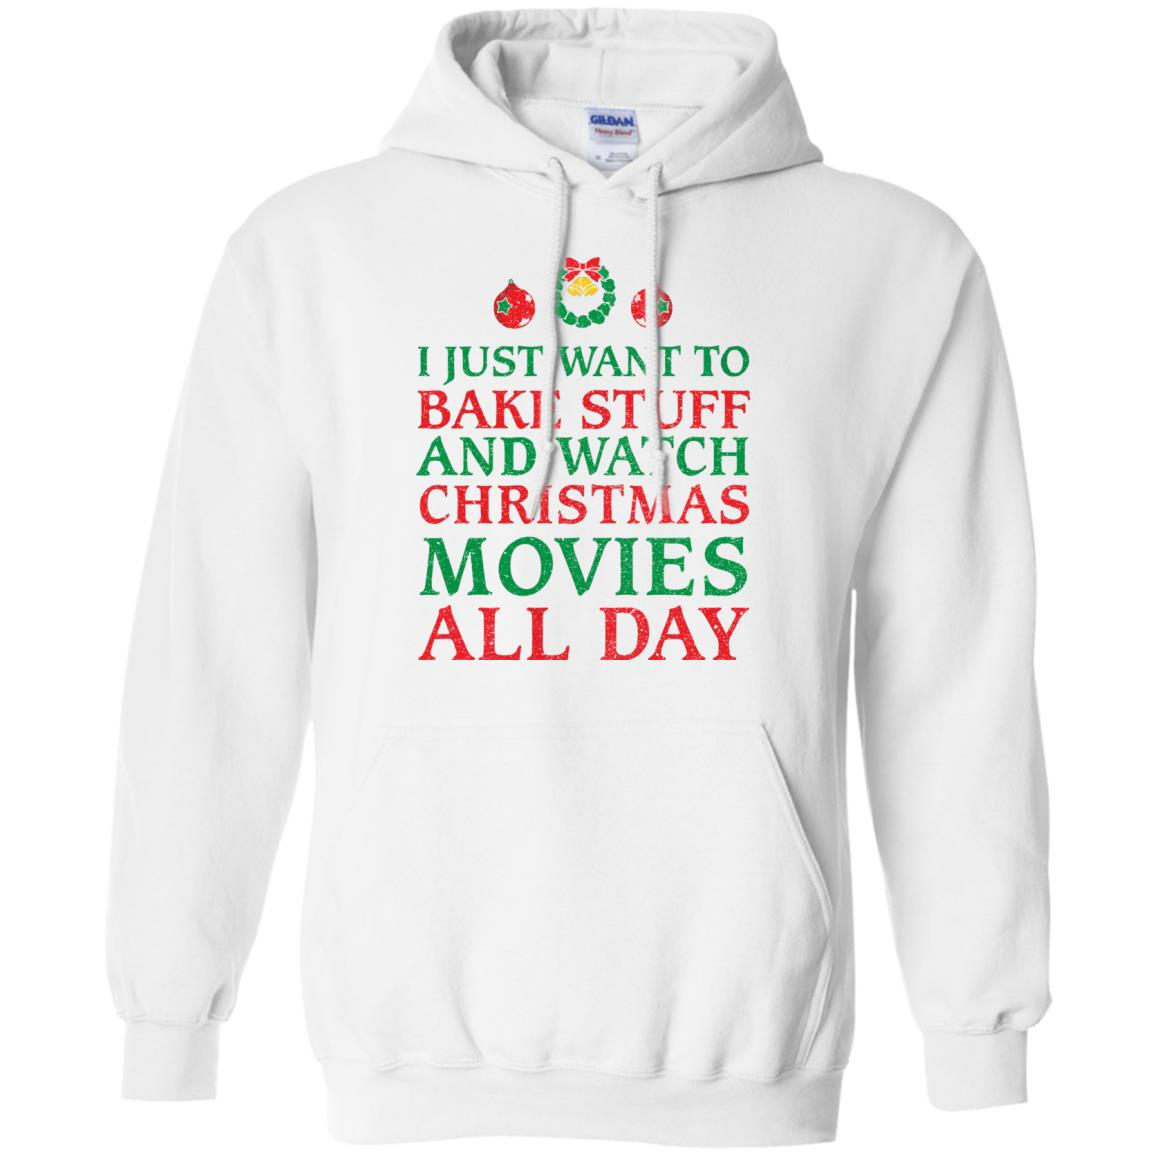 image 2699 - I Just Want to Bake Stuff and Watch Christmas Movie All Day Sweater, Ugly Sweatshirts